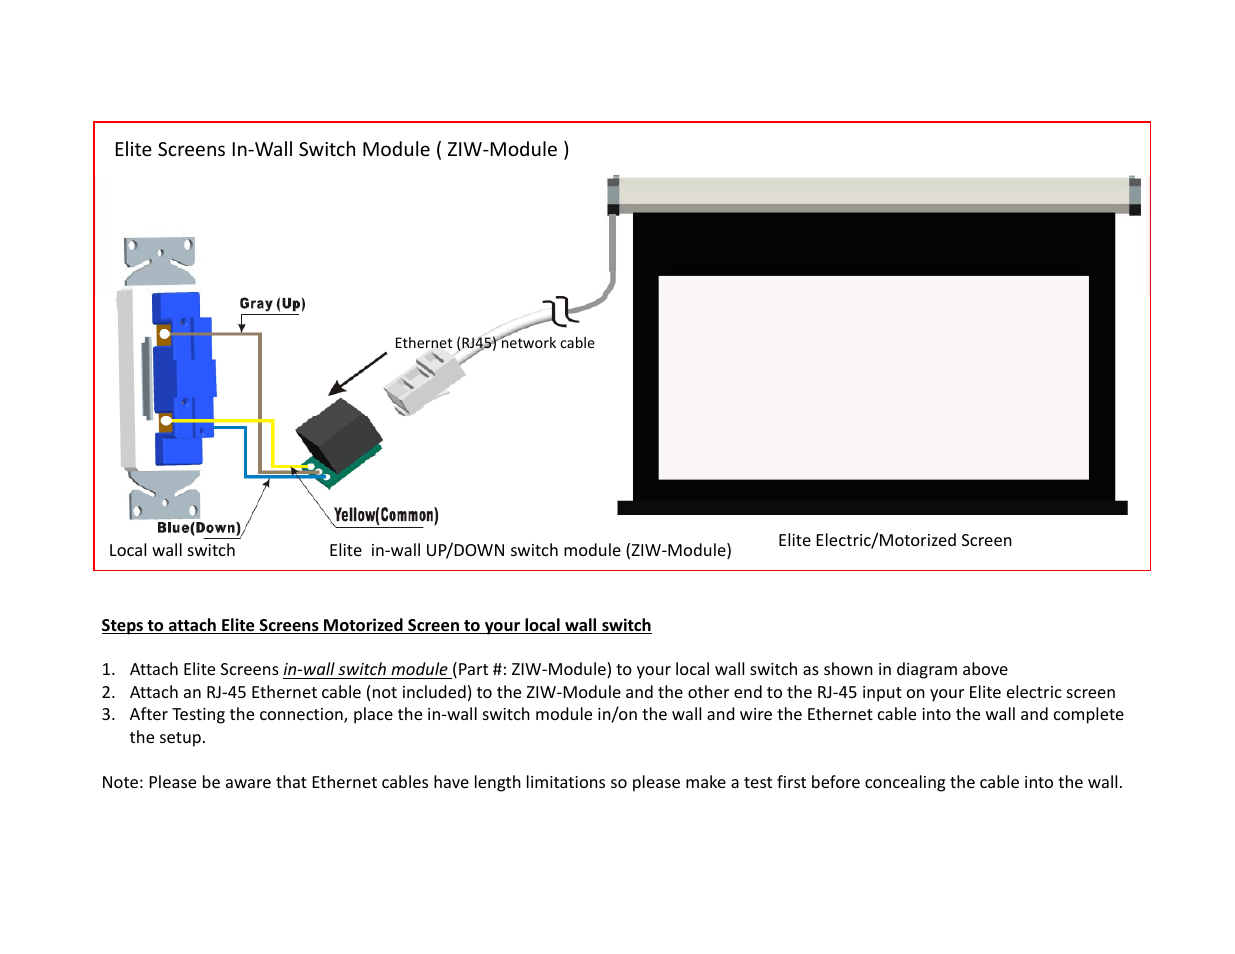 hight resolution of elite screens et user manual 1 page also for ziw module